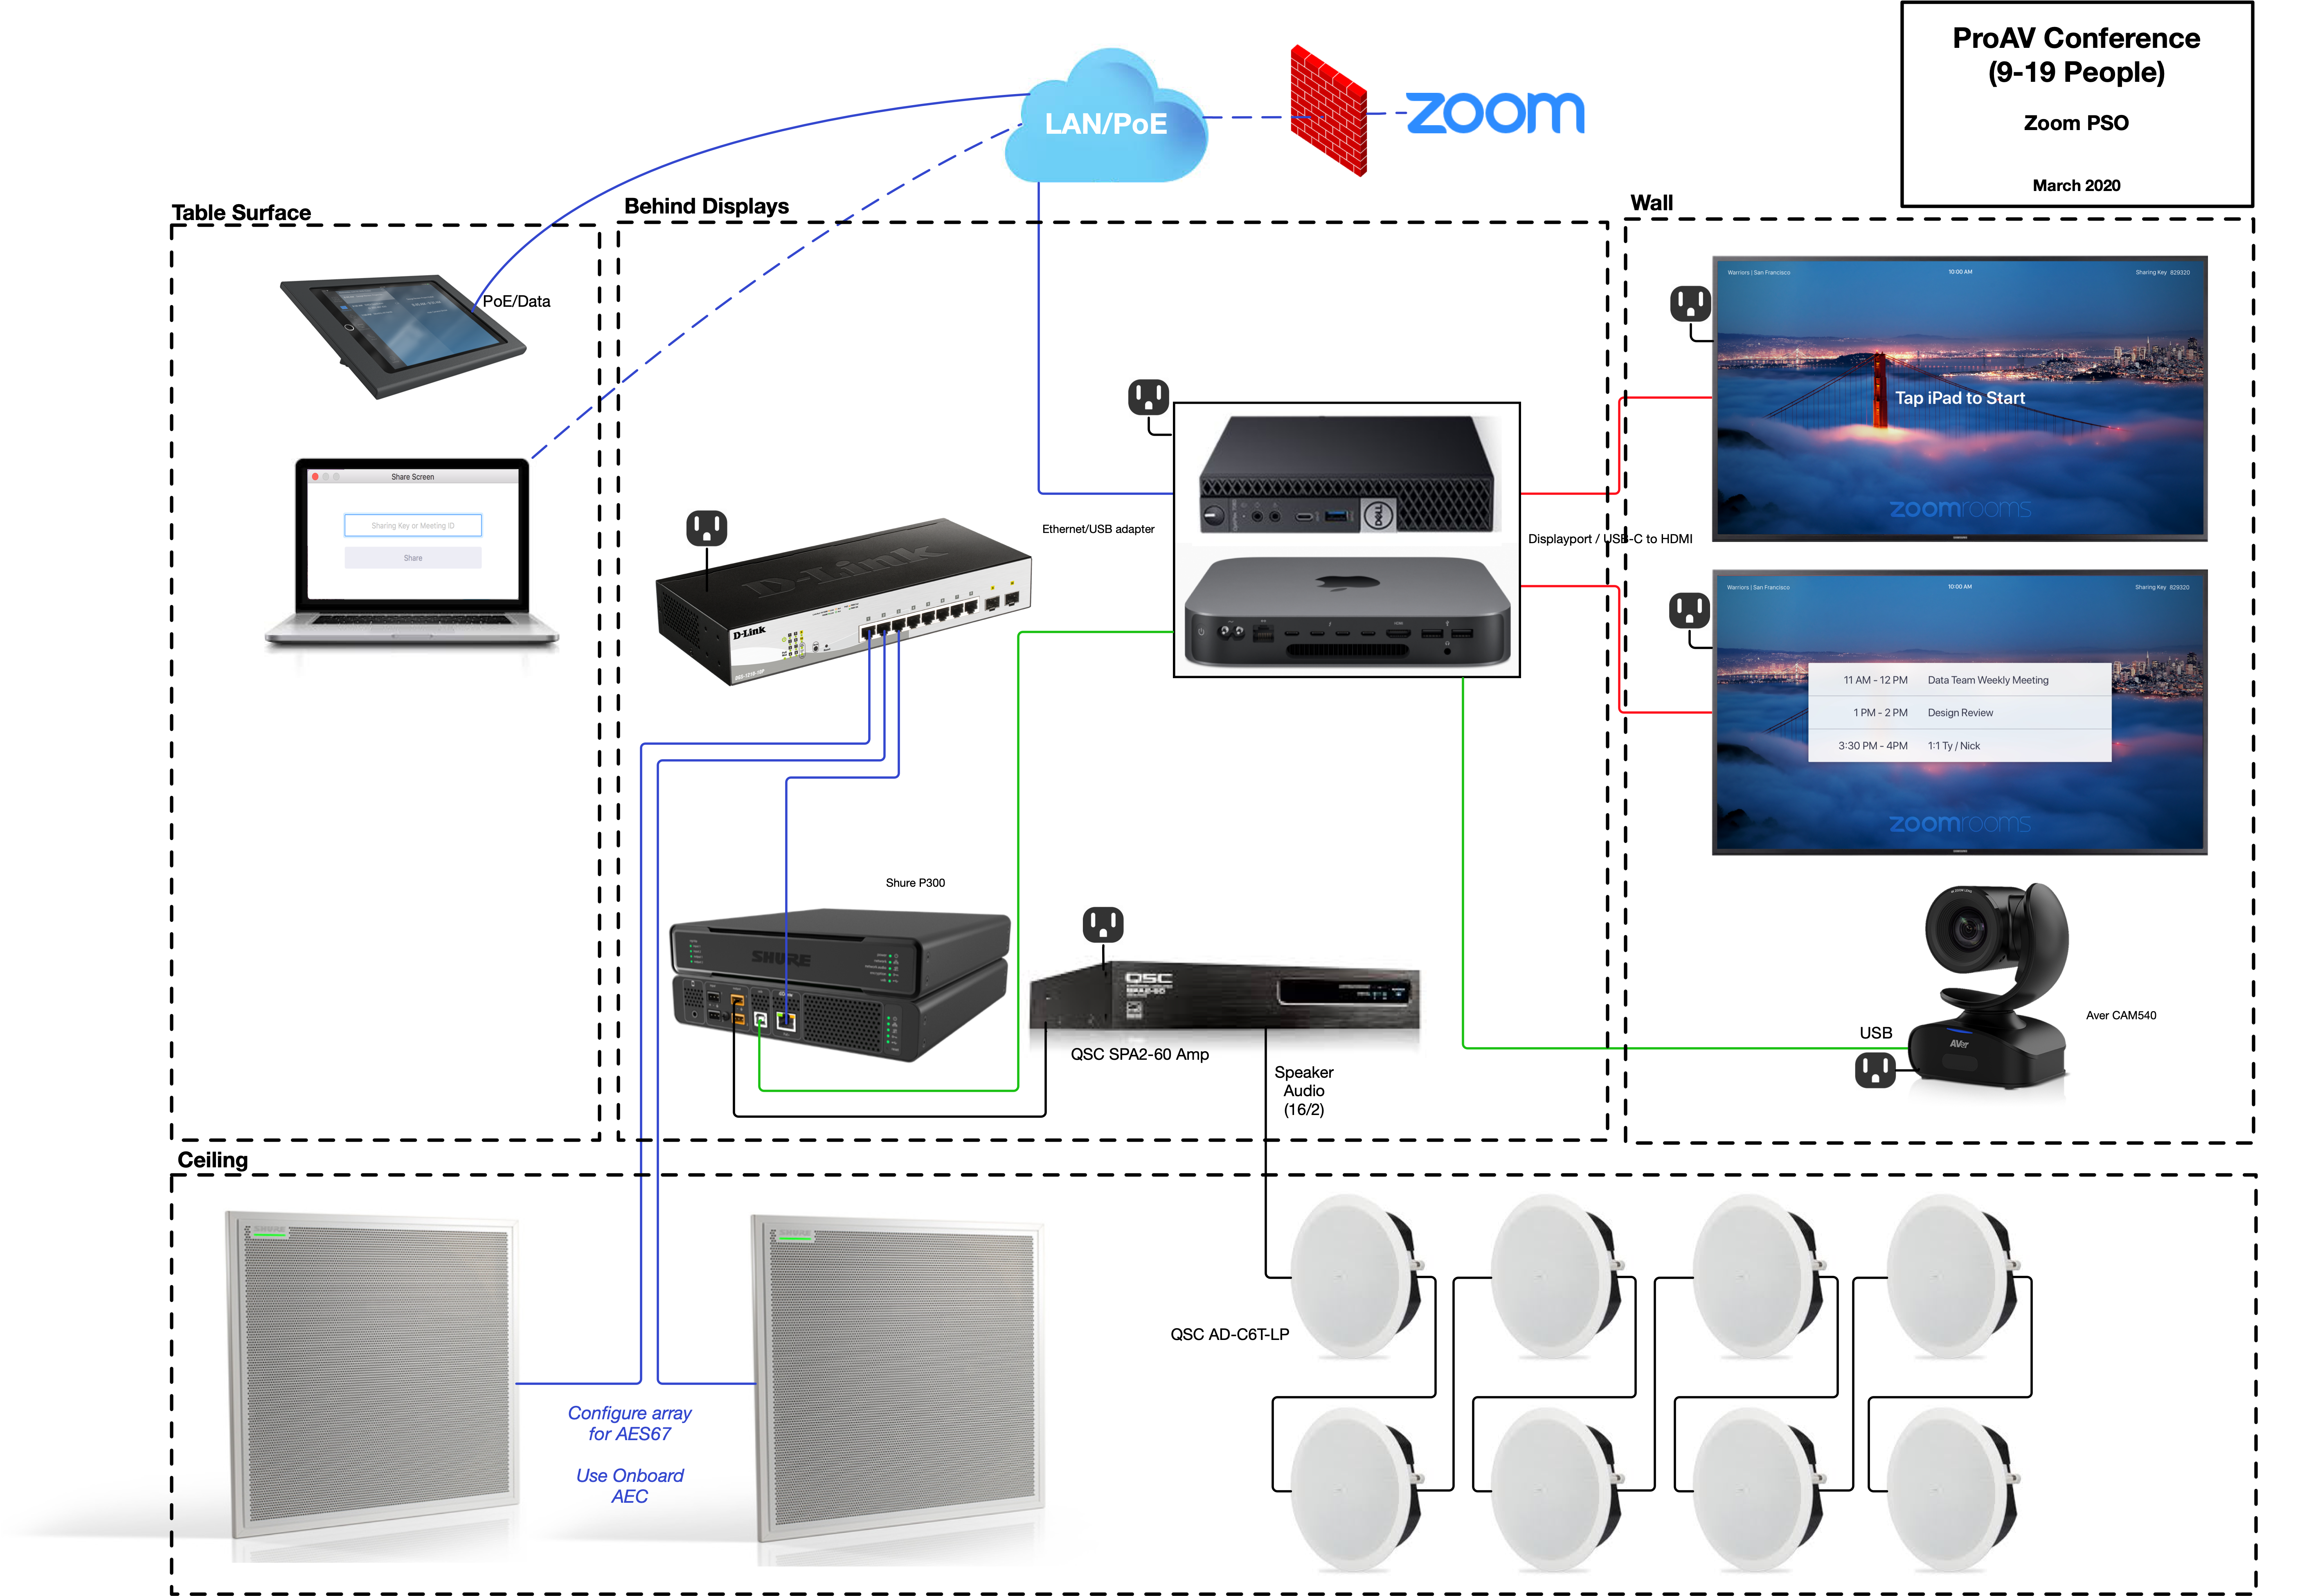 Pictorial_Schematic_-_Zoom_Rooms_ProAV__9-19_People__P300.graffle_copy.png